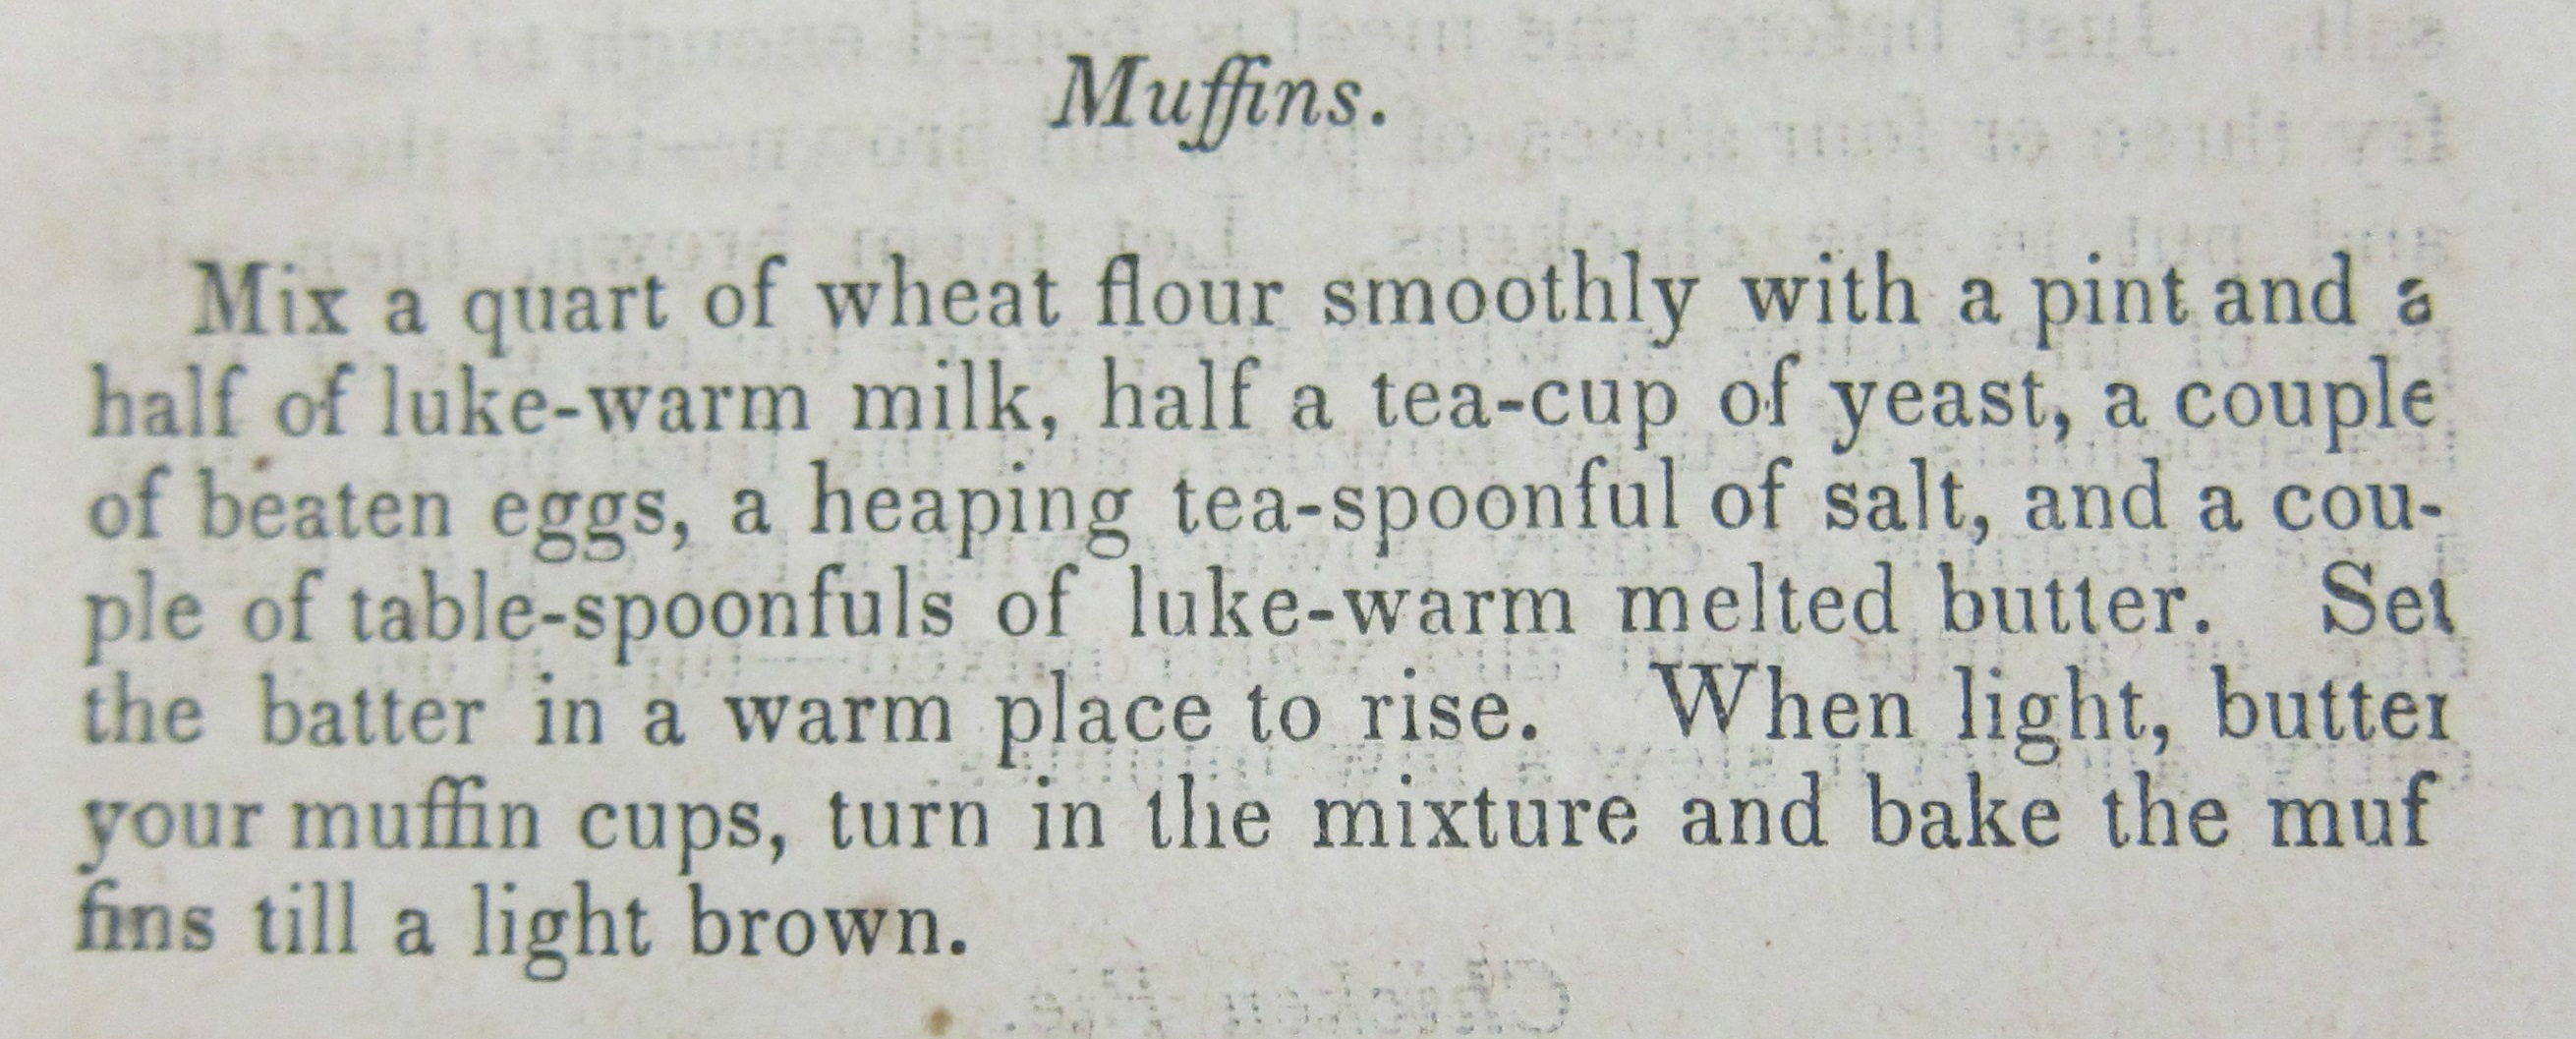 Image of recipe in book. It reads: Mix a quart of wheat flour smoothly with a pint and a half of luke-warm milk, half a tea-cup of yeast, a couple of beaten eggs, a heaping tea-spoonful of salt, and a couple of table-spoonfuls of luke-warm melted butter. Set the batter in a warm place to rise. When light, butter your muffin cups, turn in the mixture and bake the muffins till a light brown.